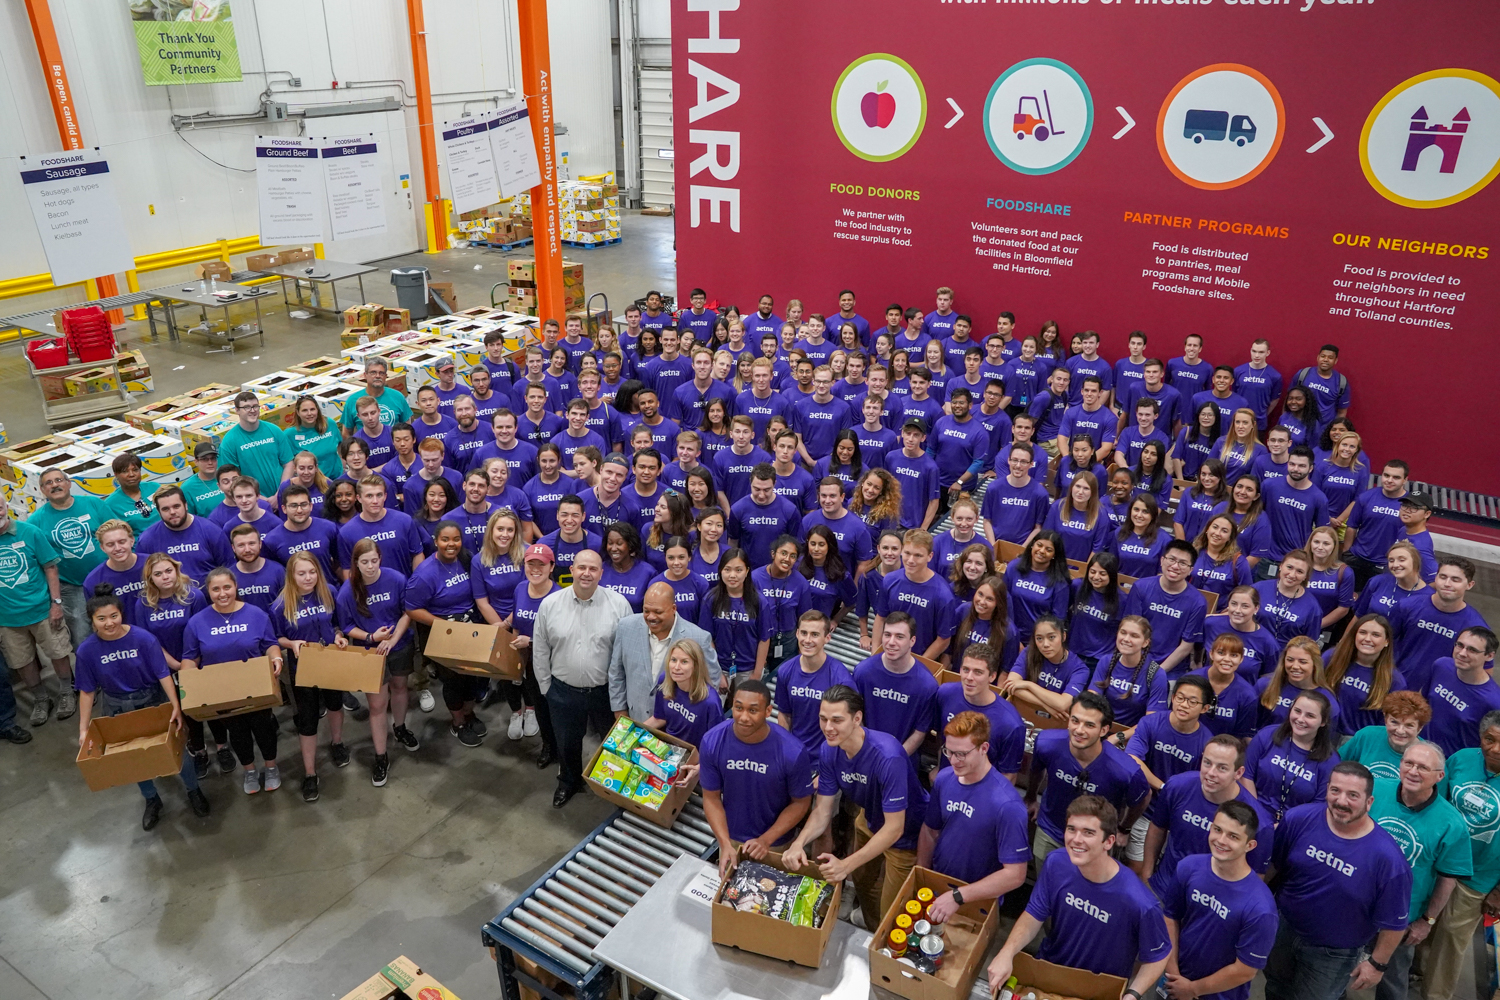 Aetna Inspire U Day Volunteers